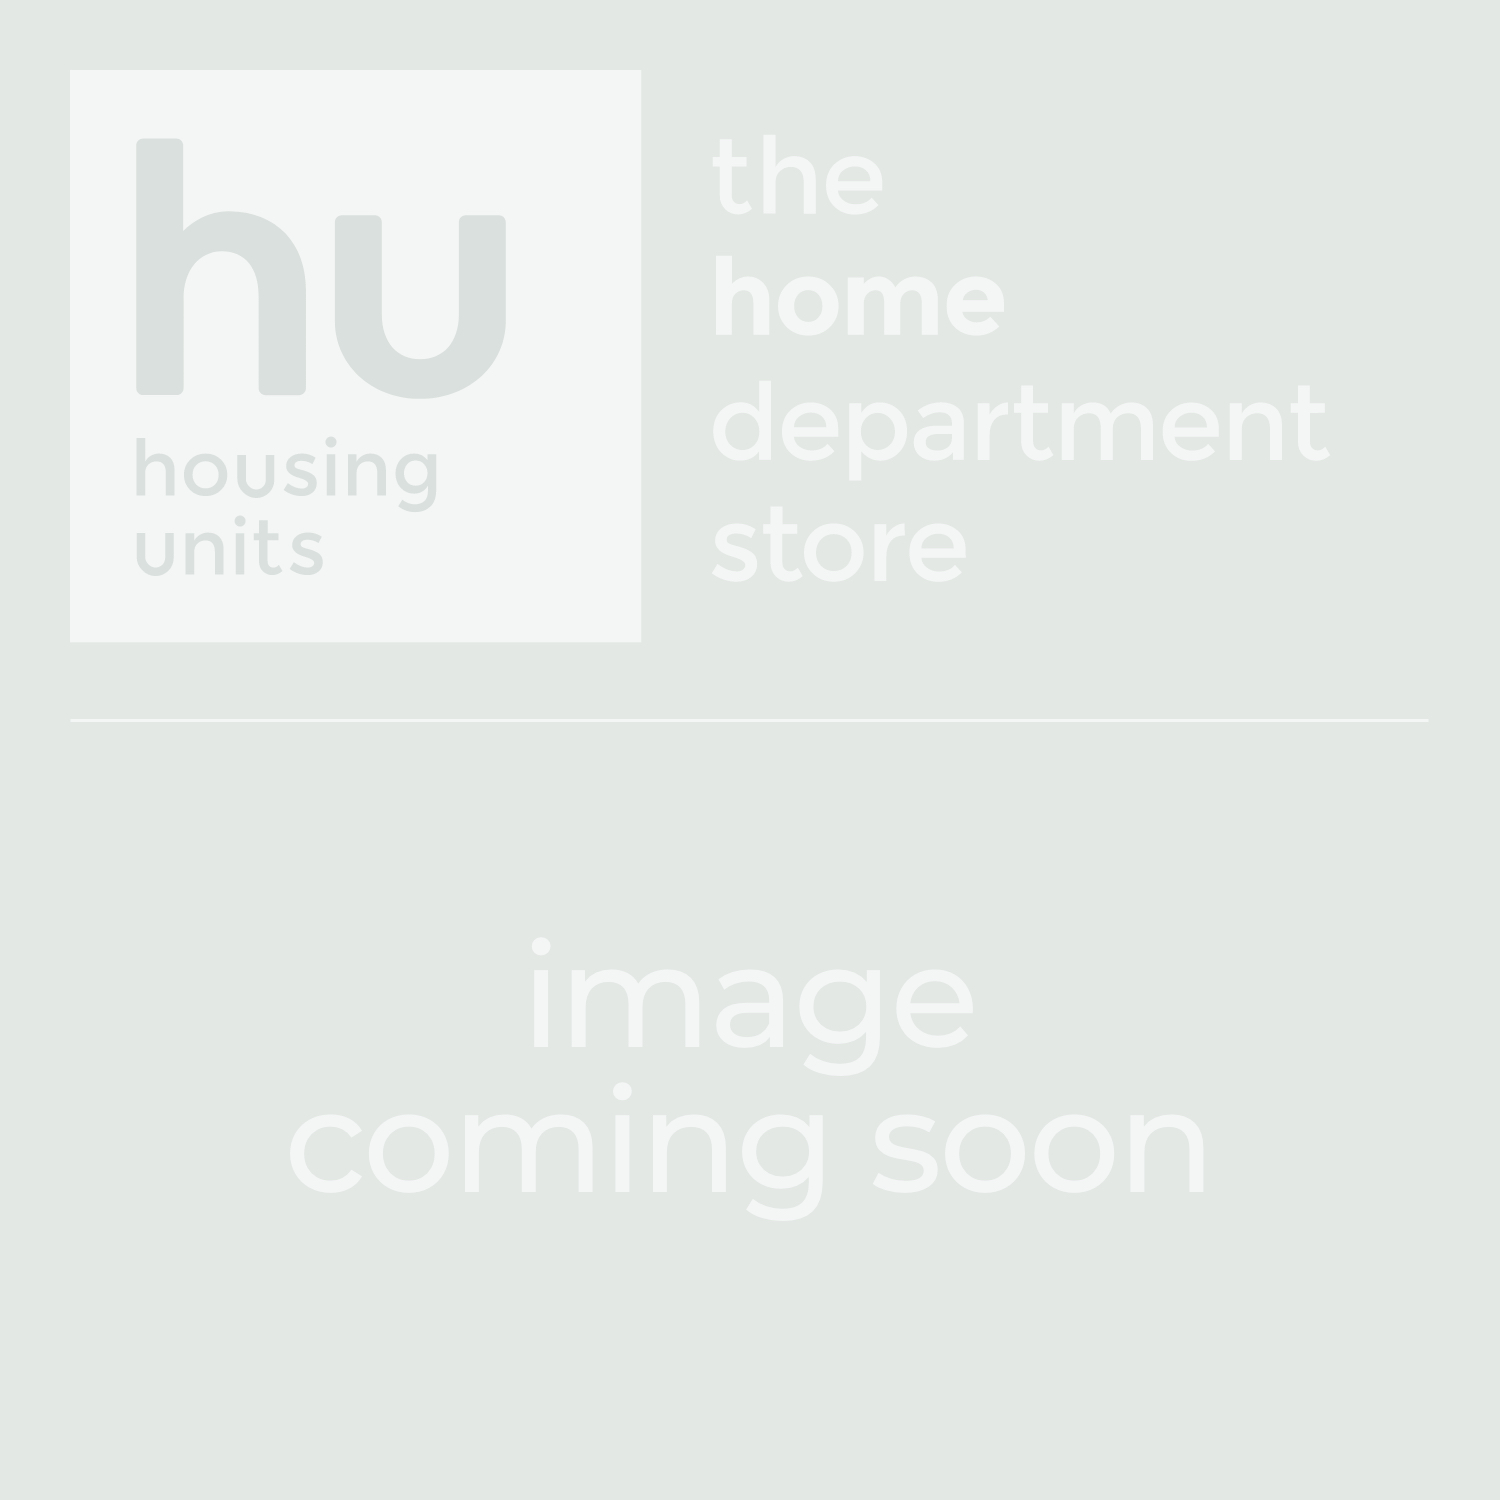 Celine Crystal & Gold 6 Light Oblong Pendant Light | Housing Units